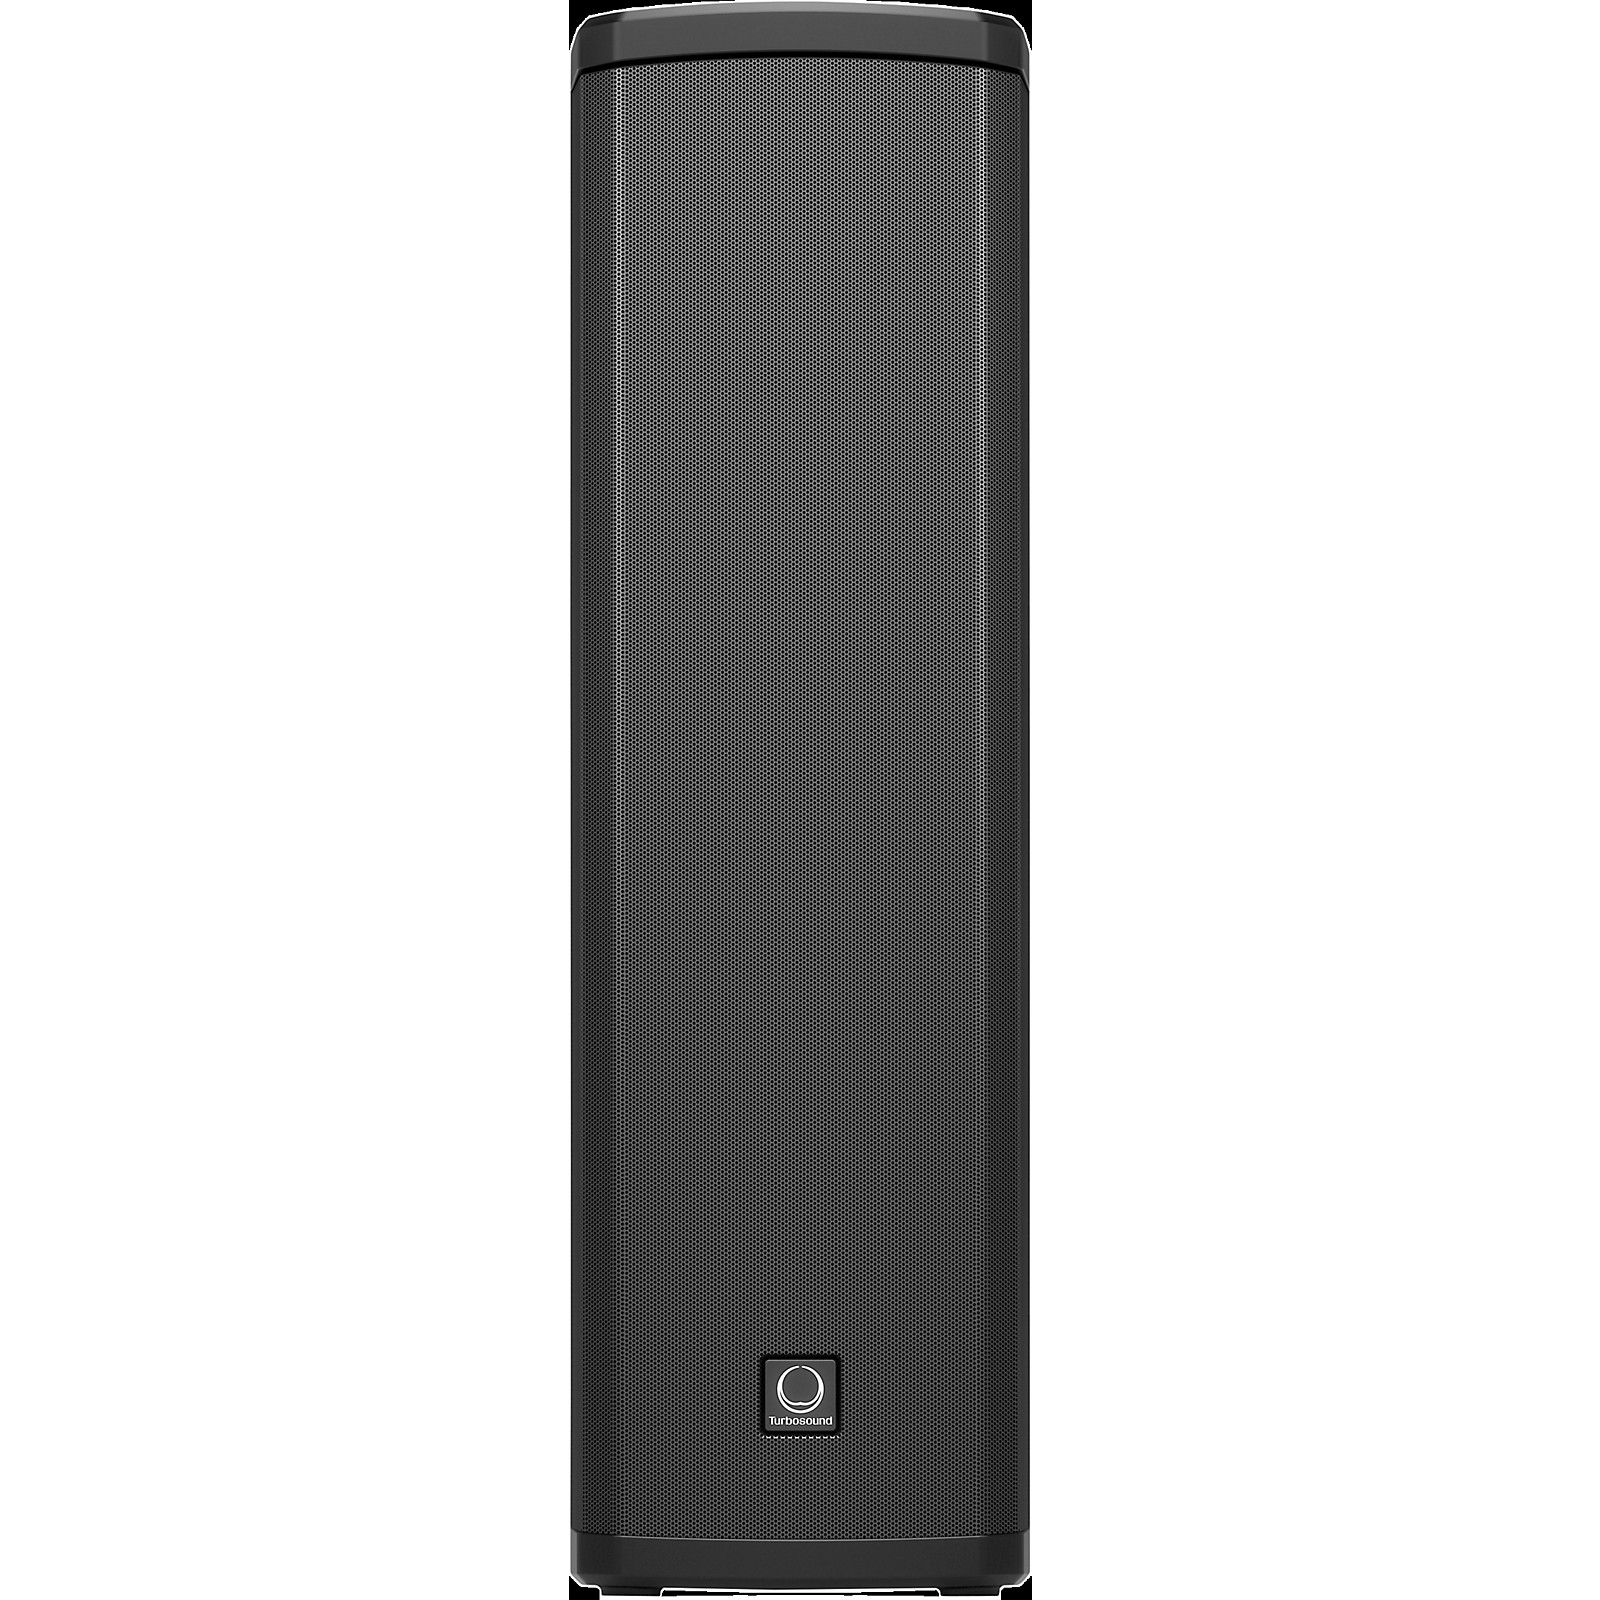 Open Box Turbosound iNSPIRE iP300 Personal Line Array Column-Style PA Active Loudspeaker System with Bluetooth